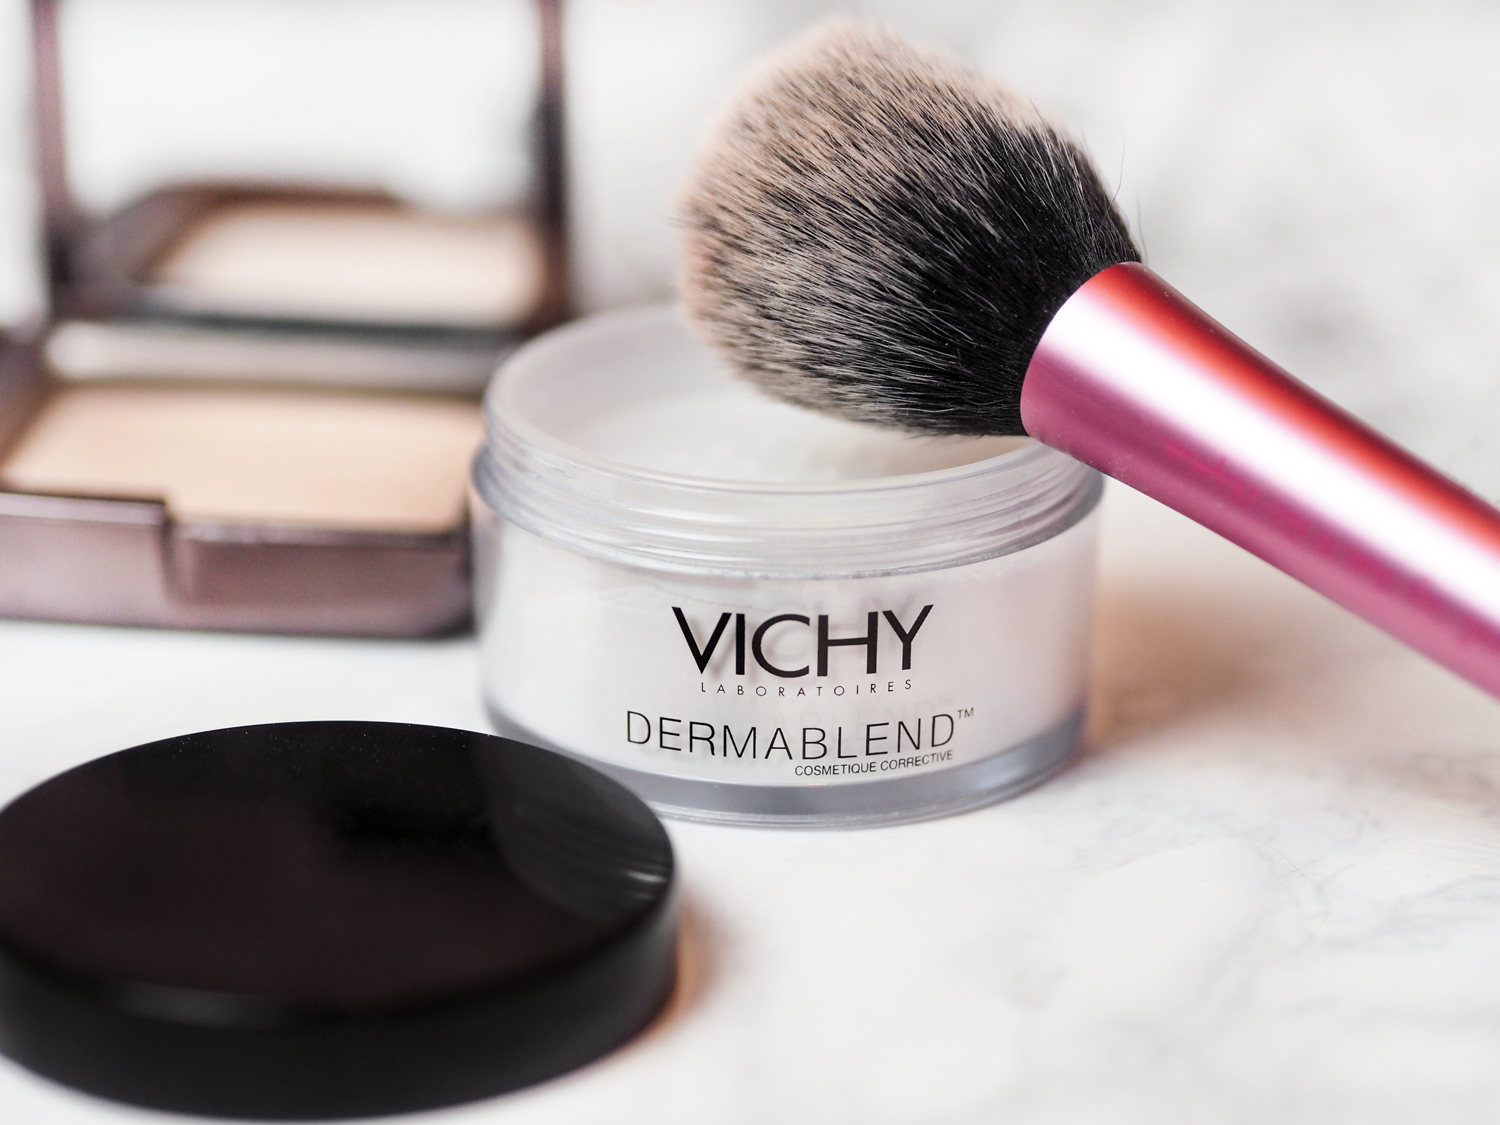 5 ways to set your makeup vichy dermablend